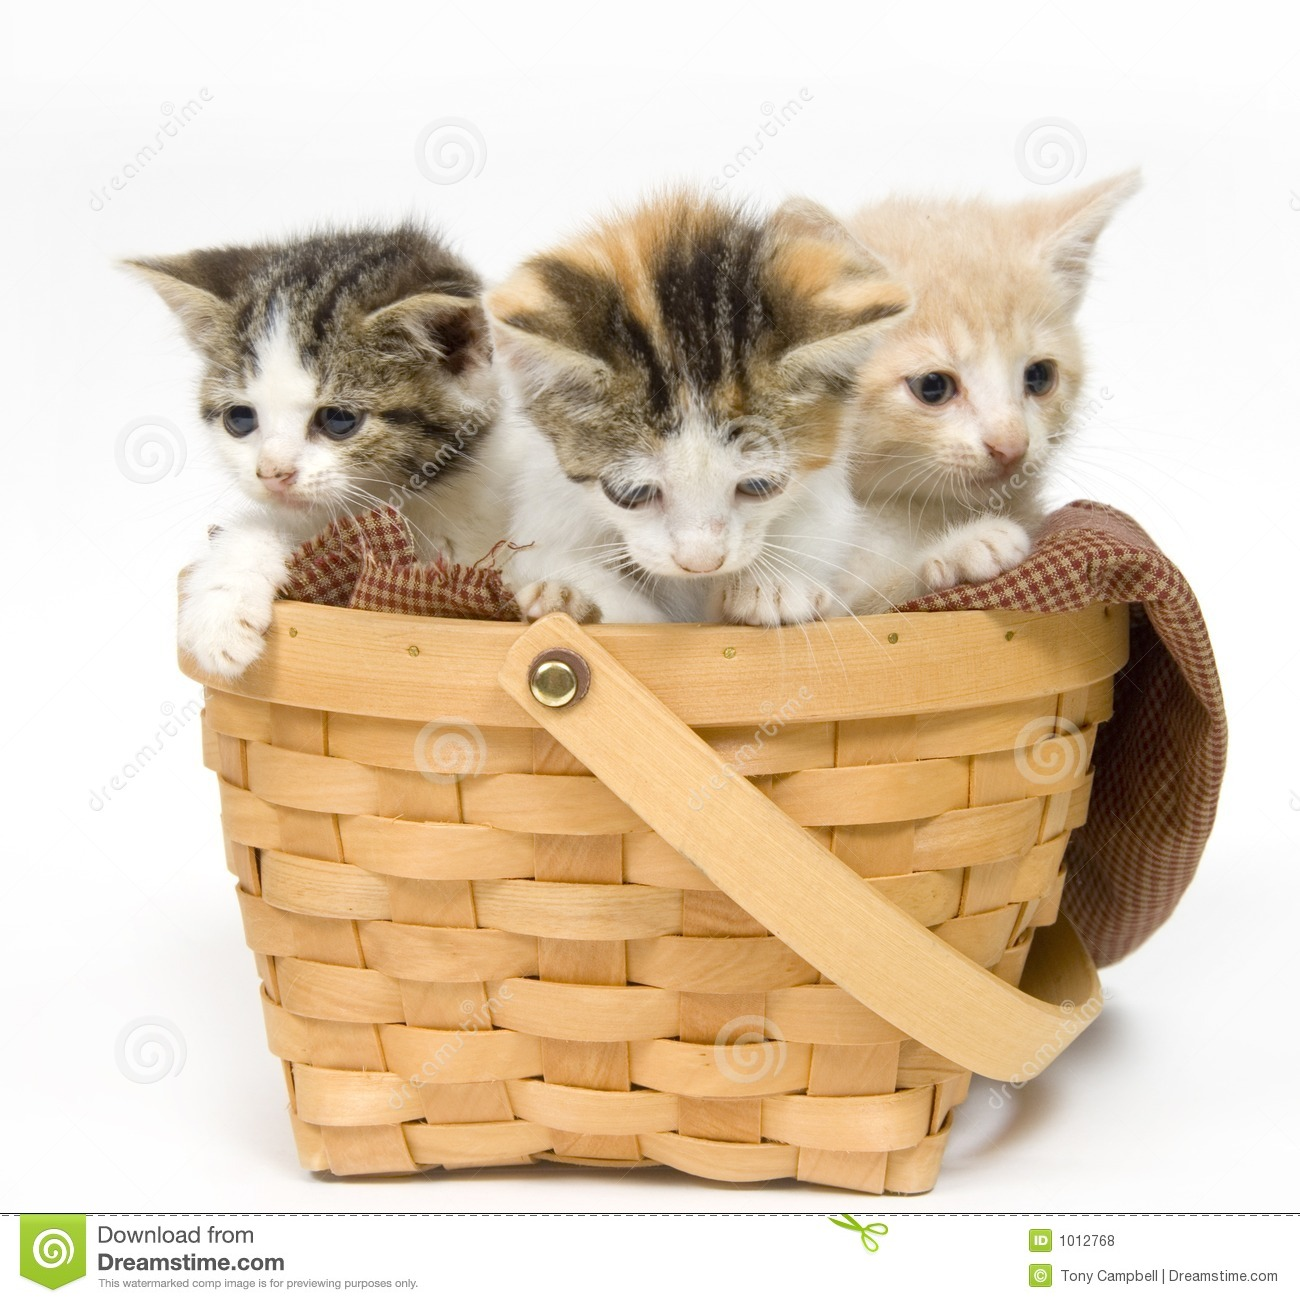 How To Weave A Cat Basket : Three kittens in a basket stock photo image of blanket